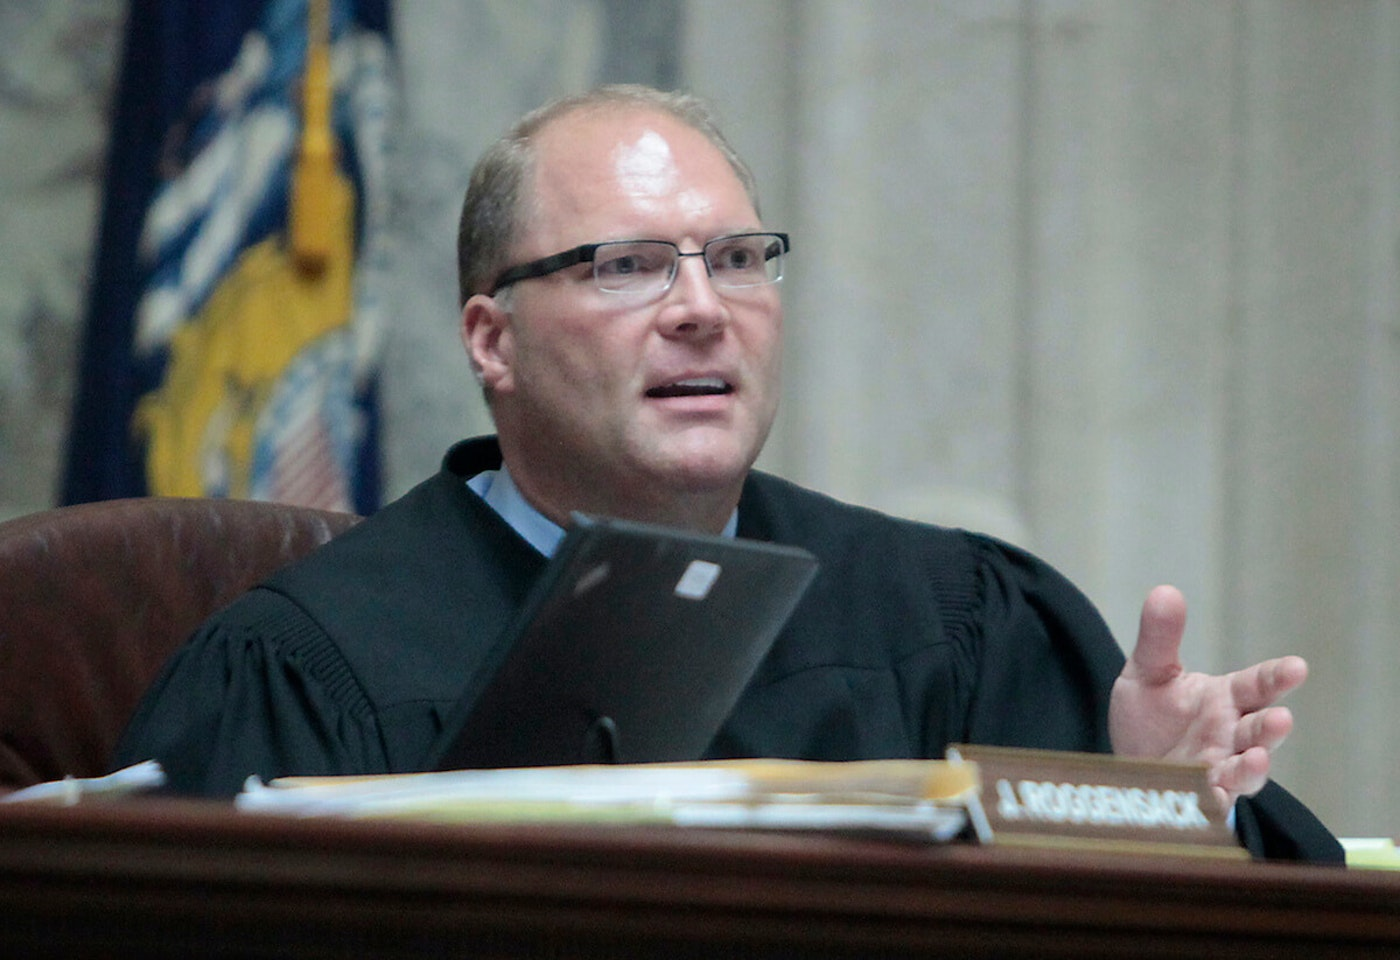 Former Wisconsin Supreme Court Justice Michael J. Gableman, pictured here in 2011, has been hired by Assembly Speaker Robin Vos (R-Rochester) to investigate baseless concerns over the 2020 election. The investigation is one of many nationwide as Republicans follow the lead of former President Donald Trump and work to undermine faith in the electoral process. (John Hart/Wisconsin State Journal, Pool Photo via AP File)